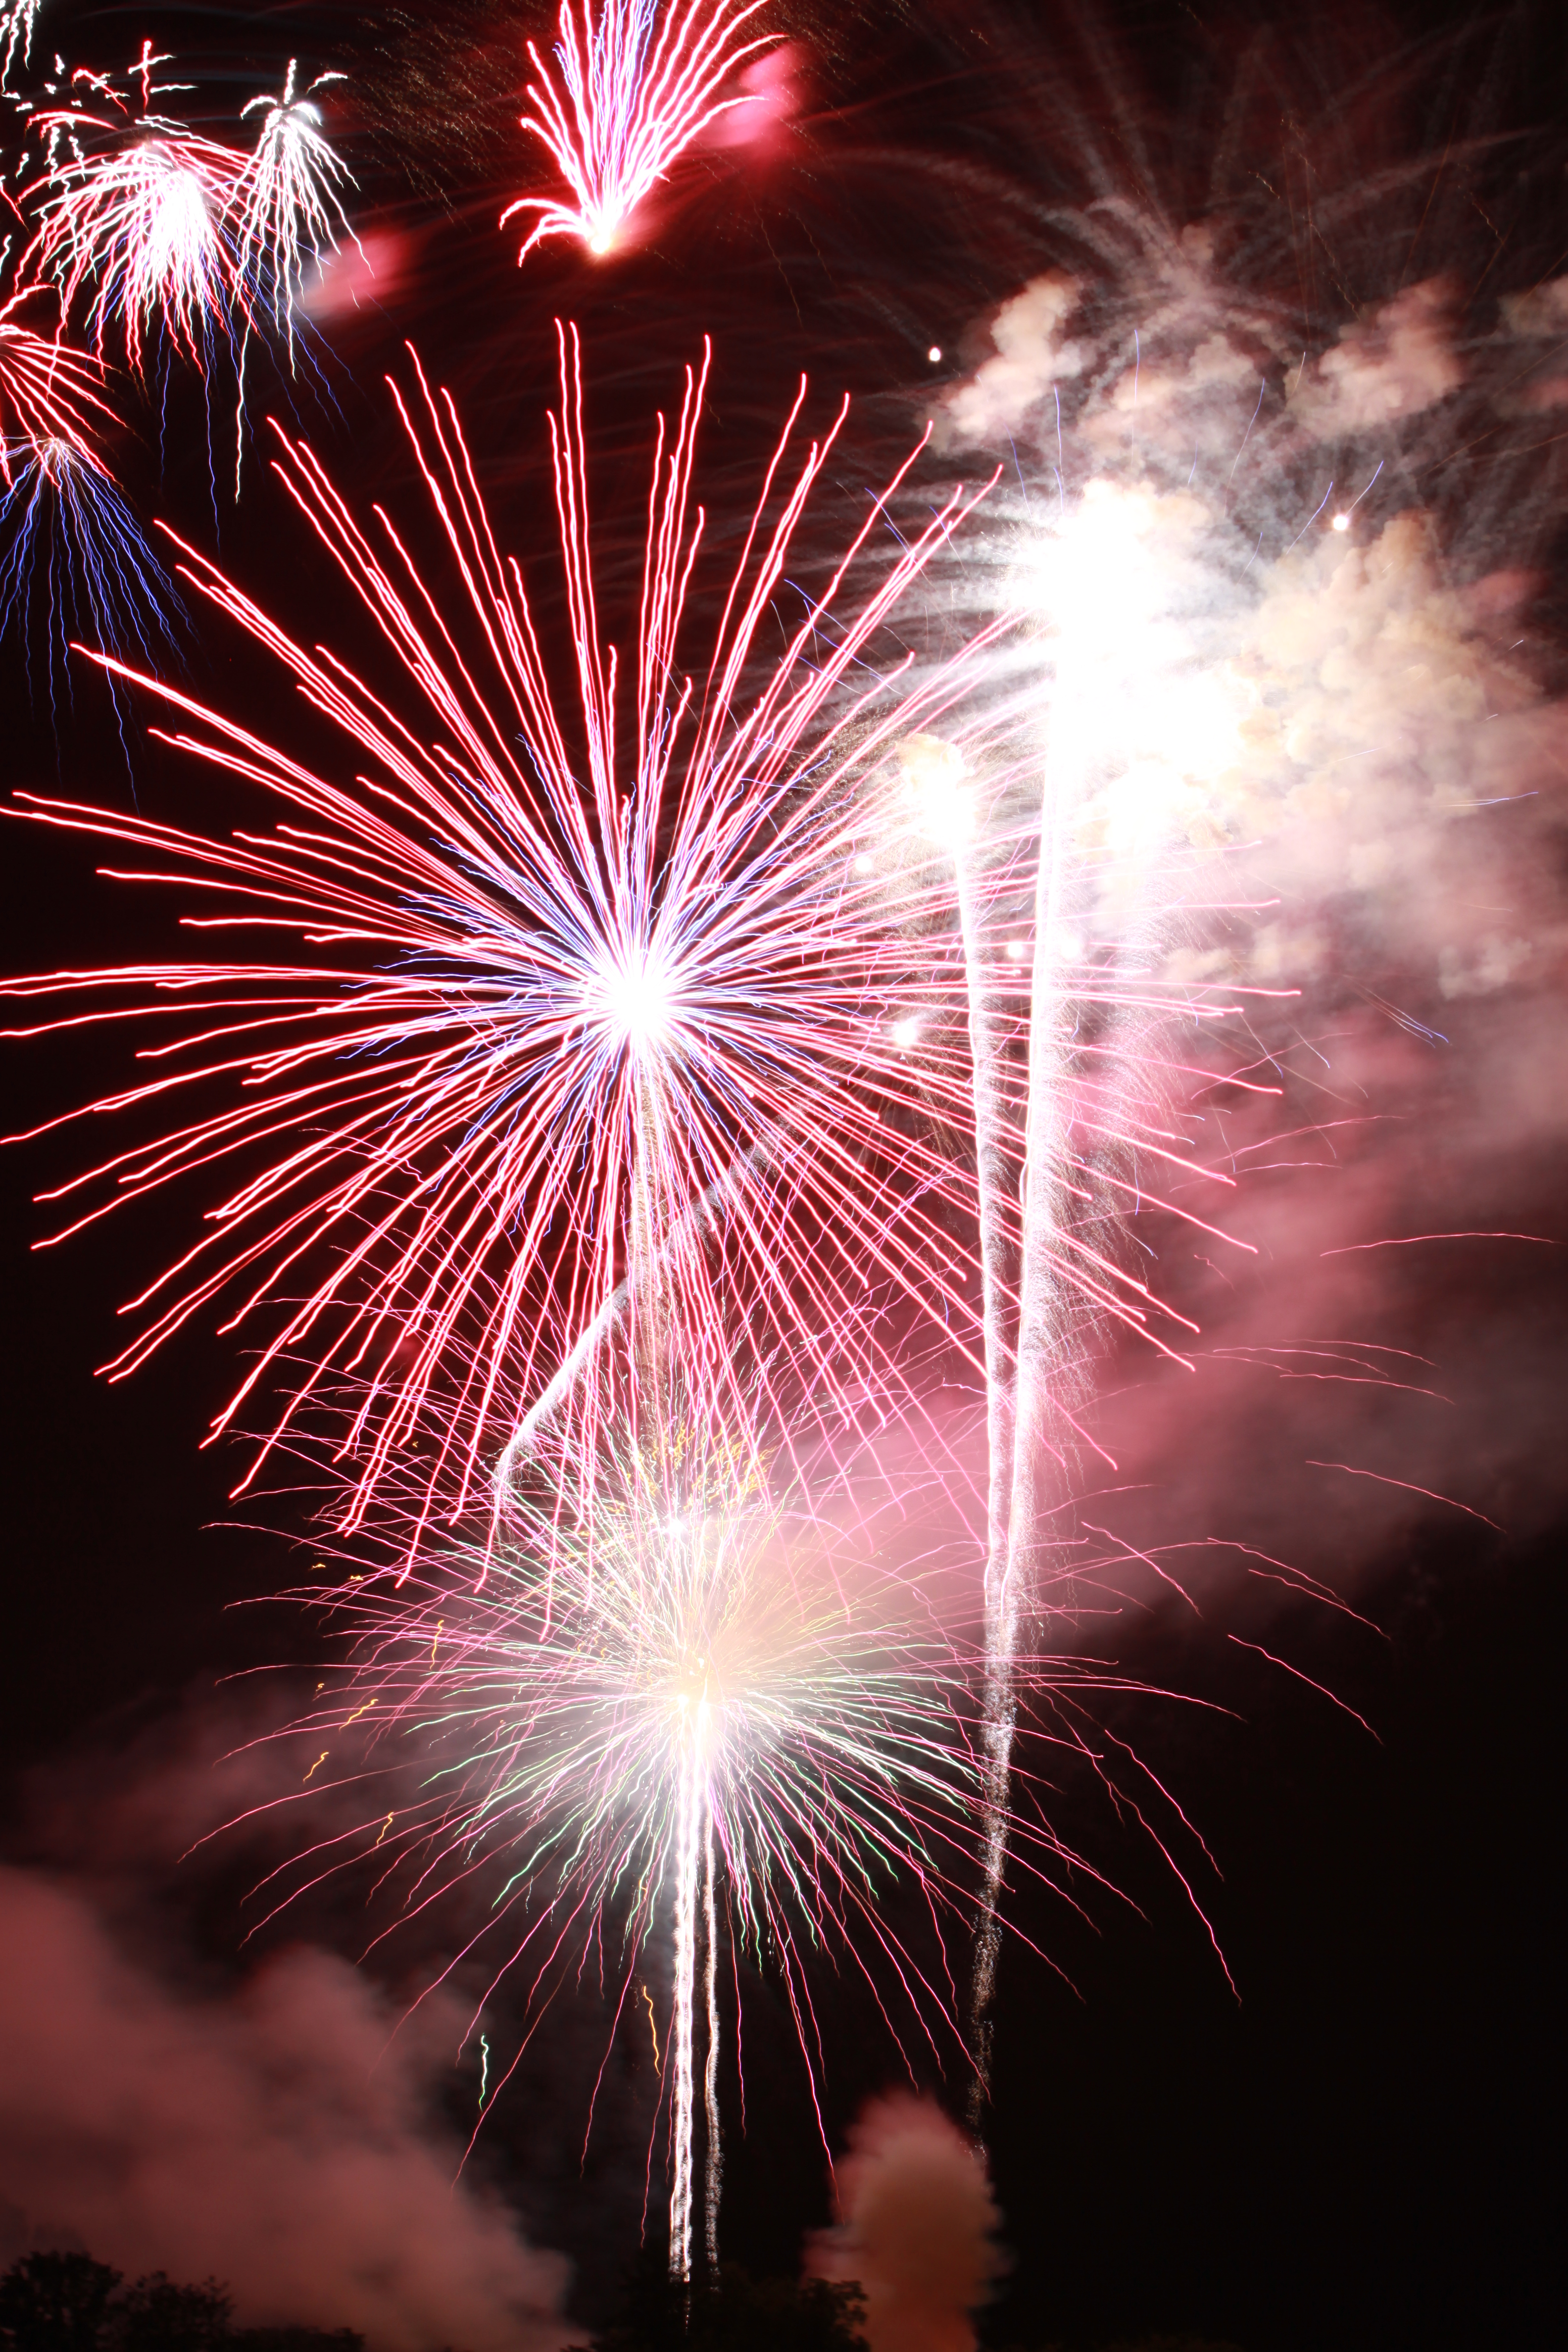 Fire Department Urges Fireworks Safety this Independence Day